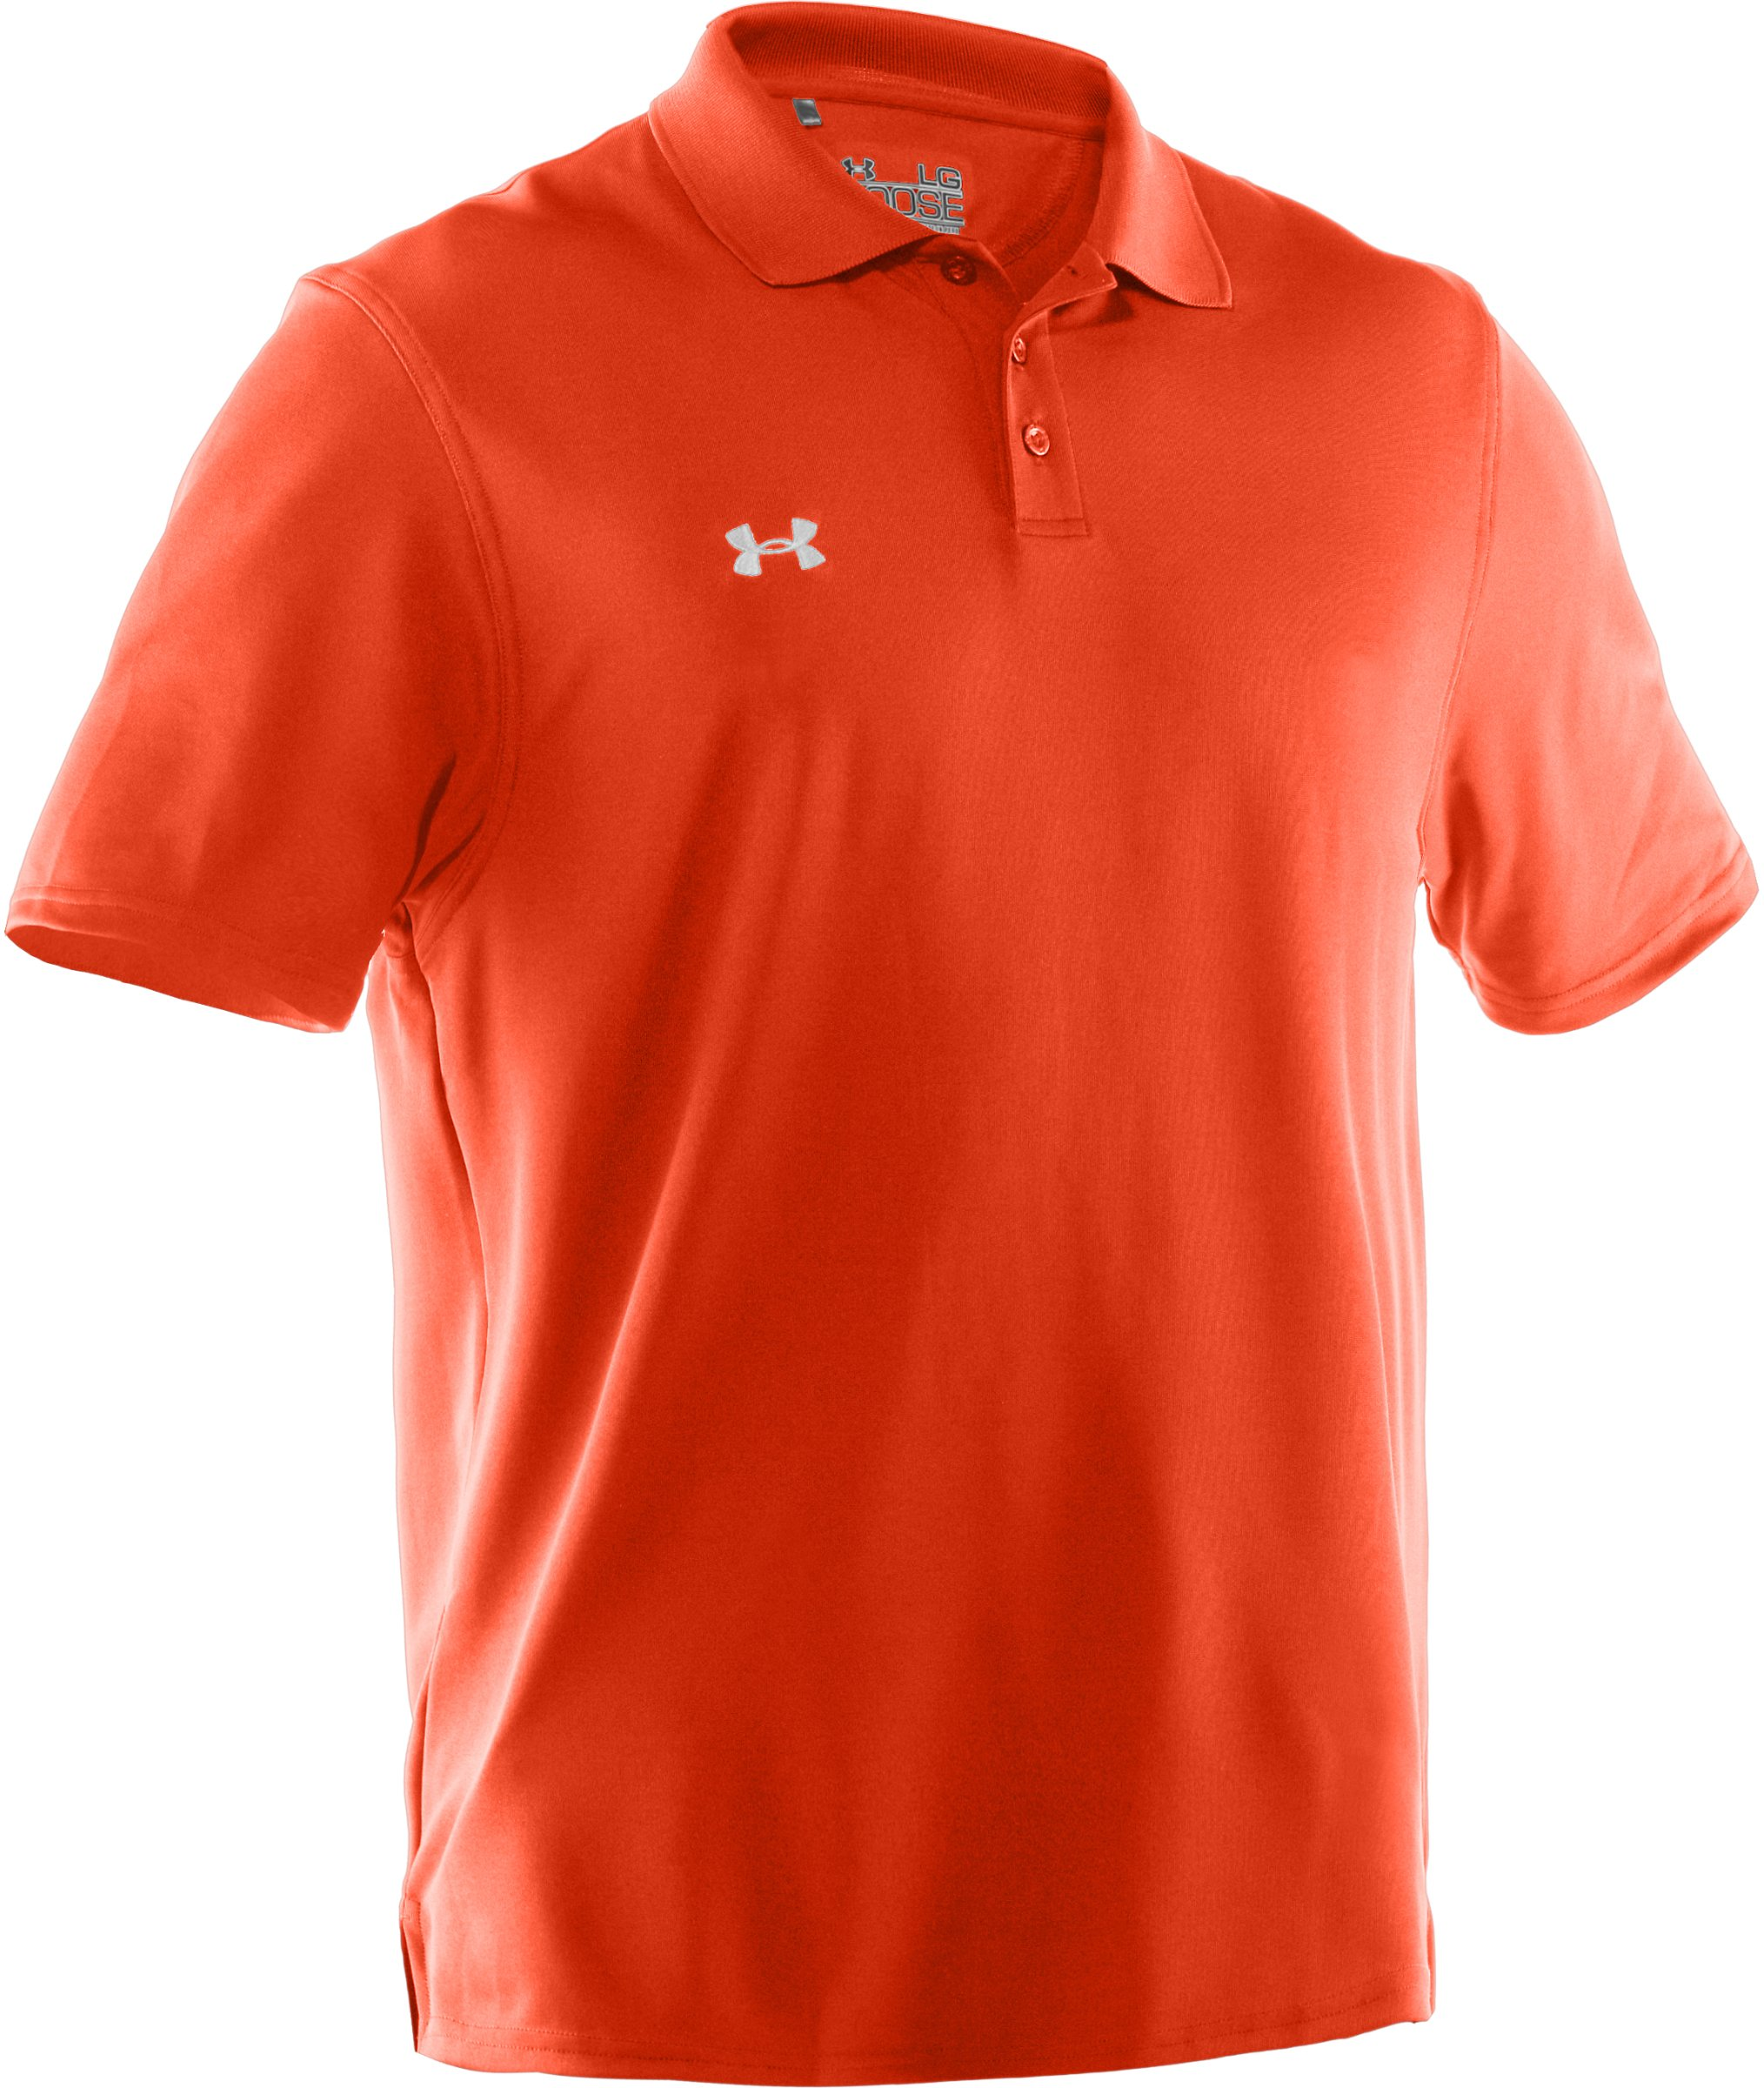 Under Armour Team Performance Polo Dark Orange/White Small